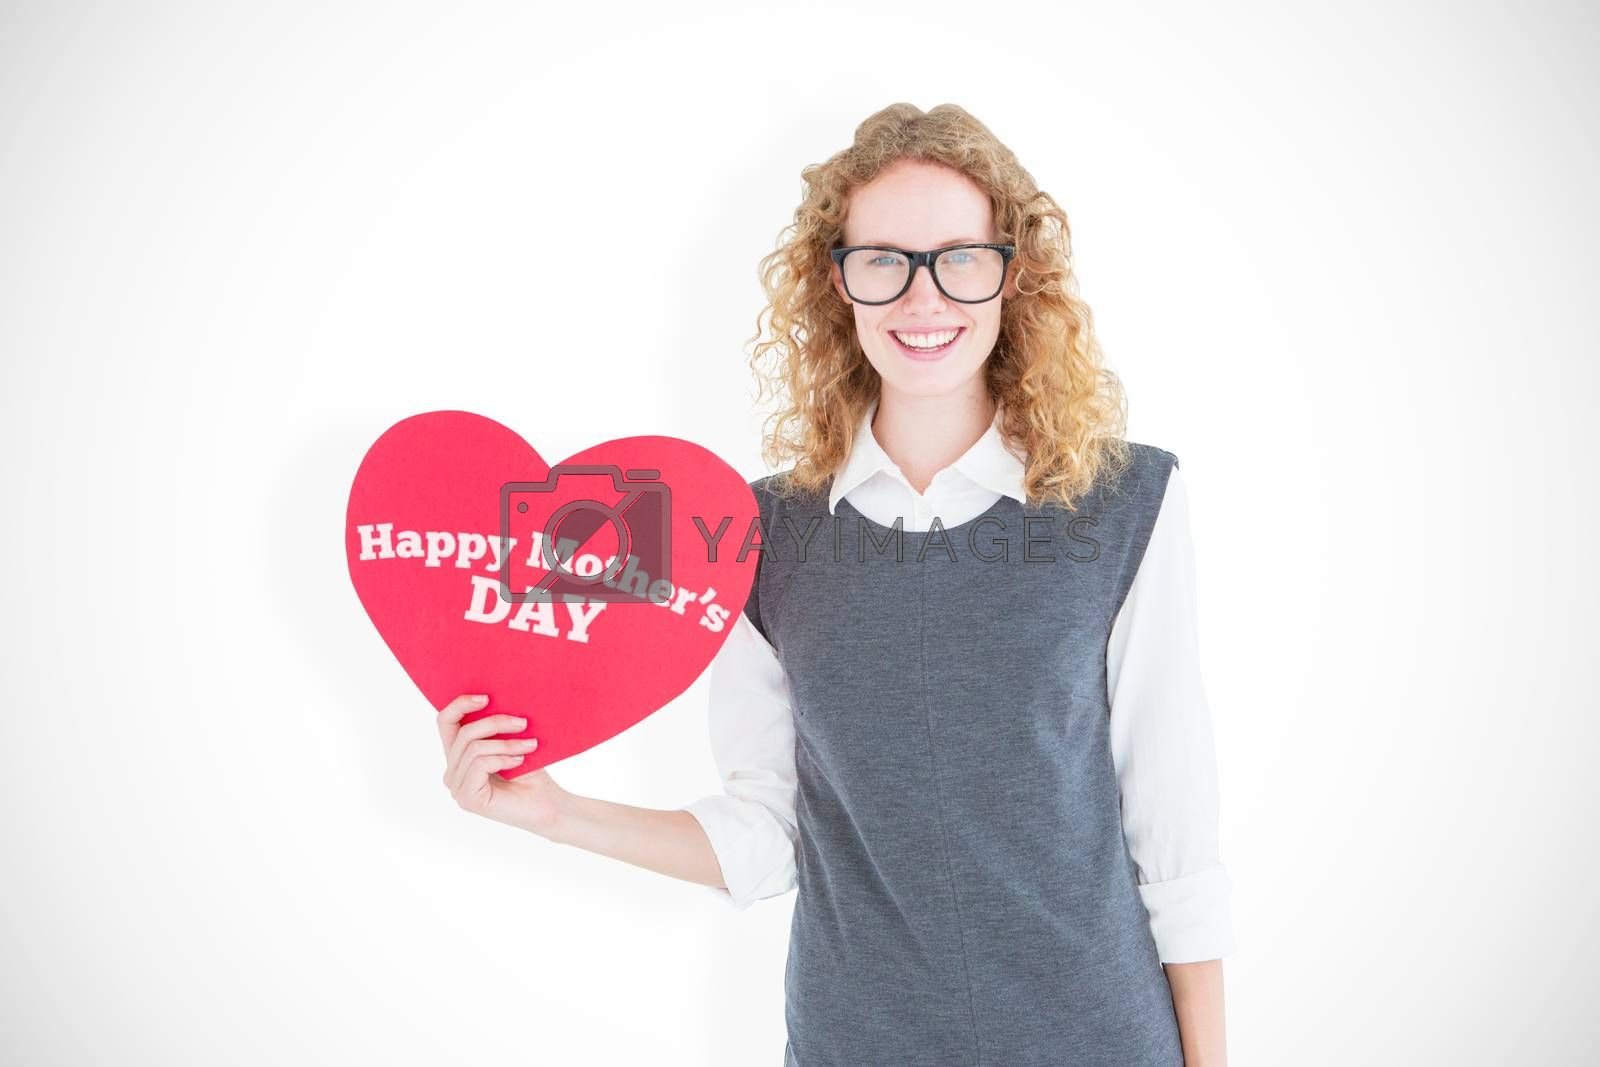 Geeky hipster holding heart card against mothers day greeting